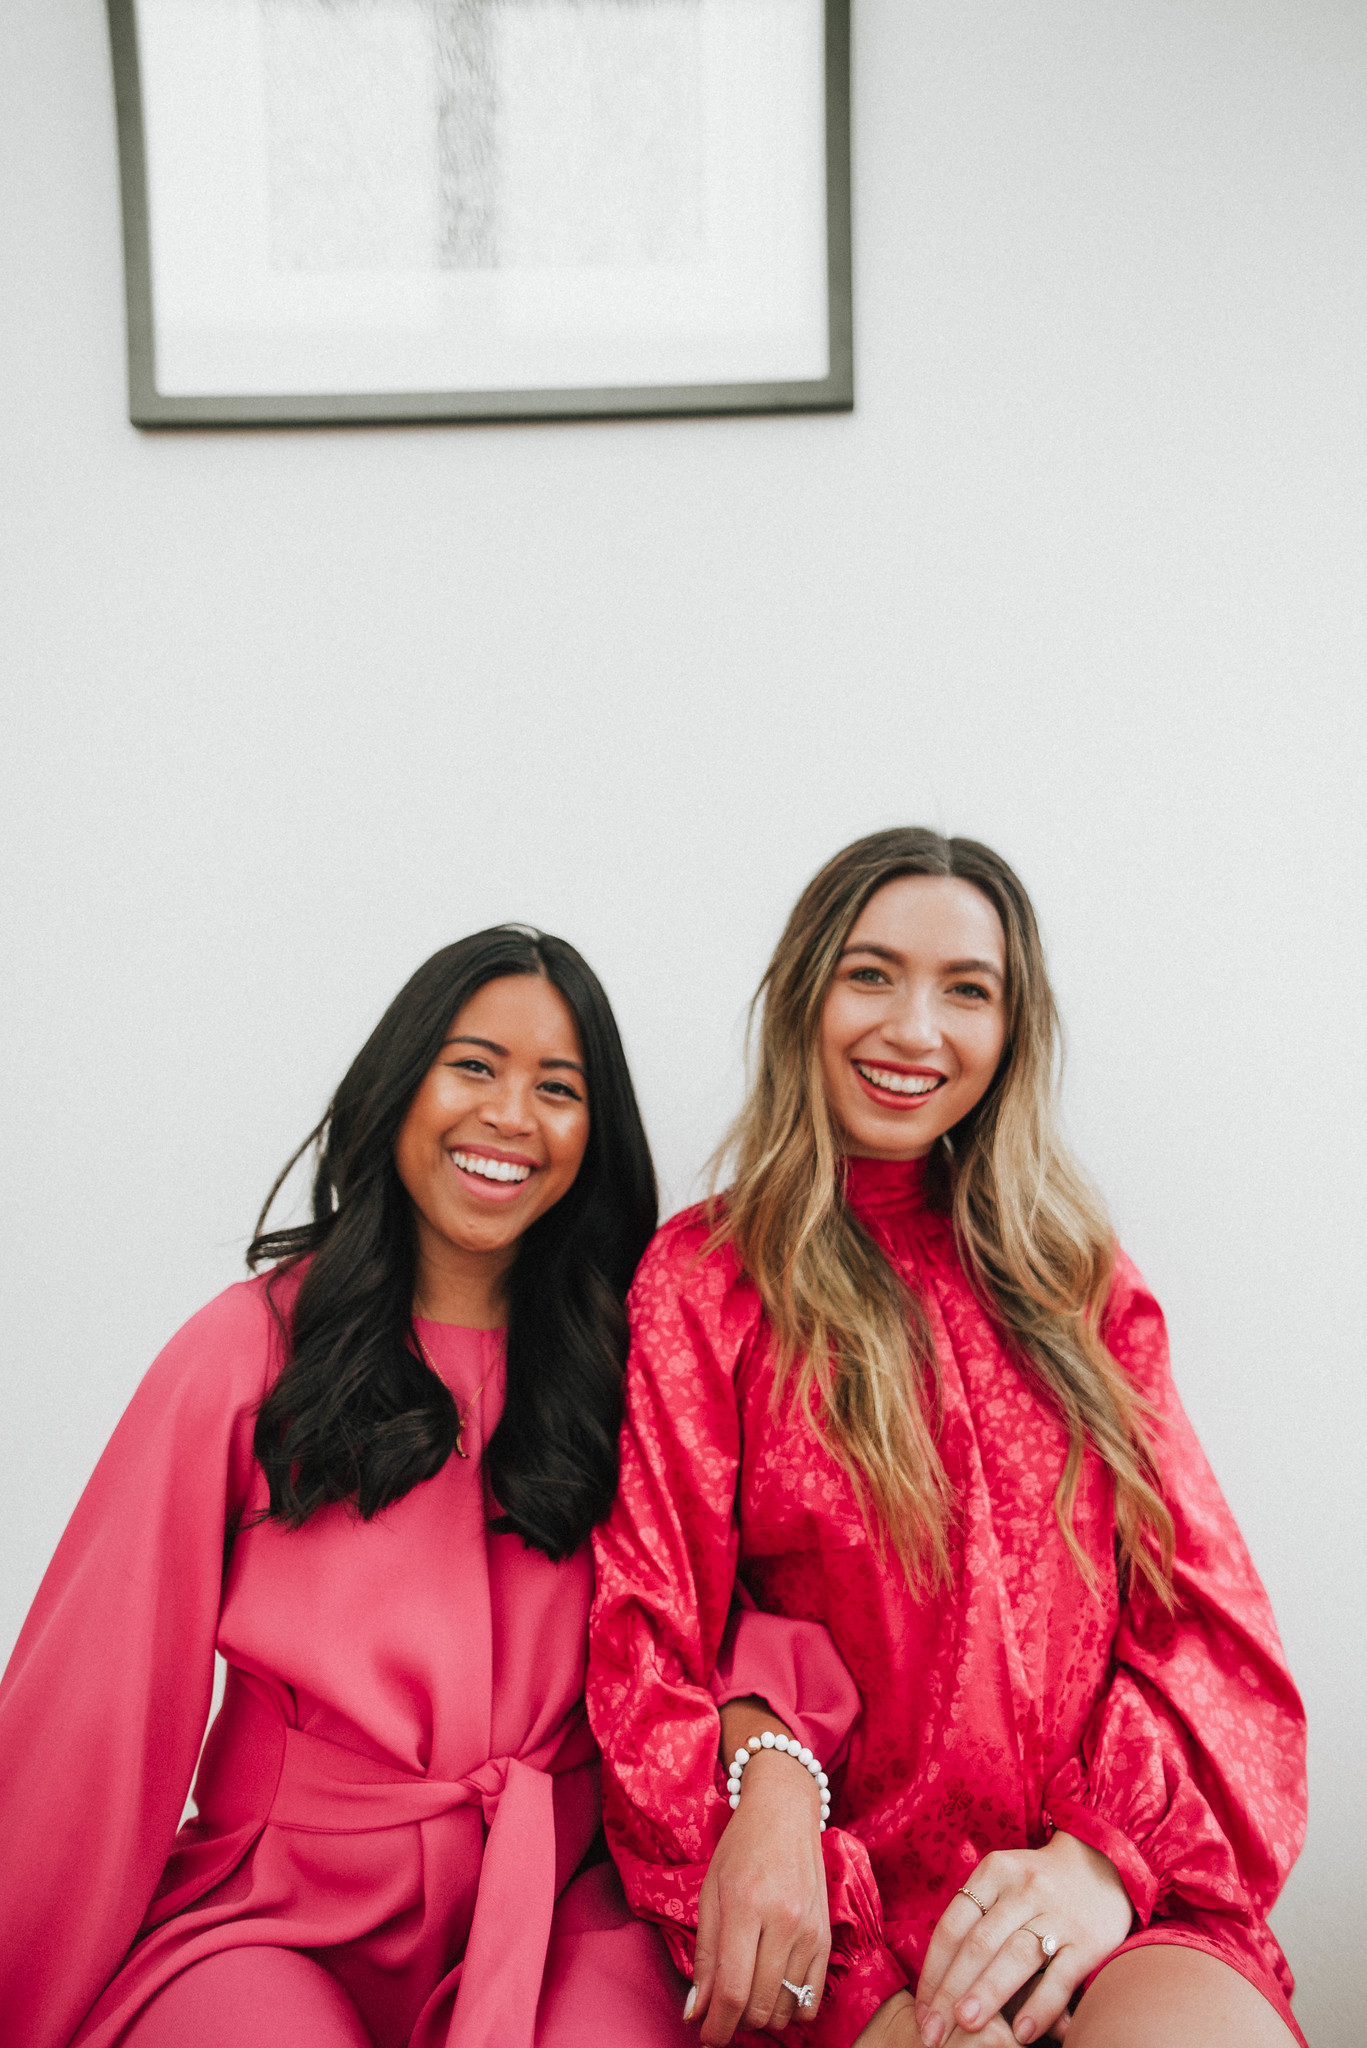 emma and maddy - seattle content creators - seattle podcast host -new podcast